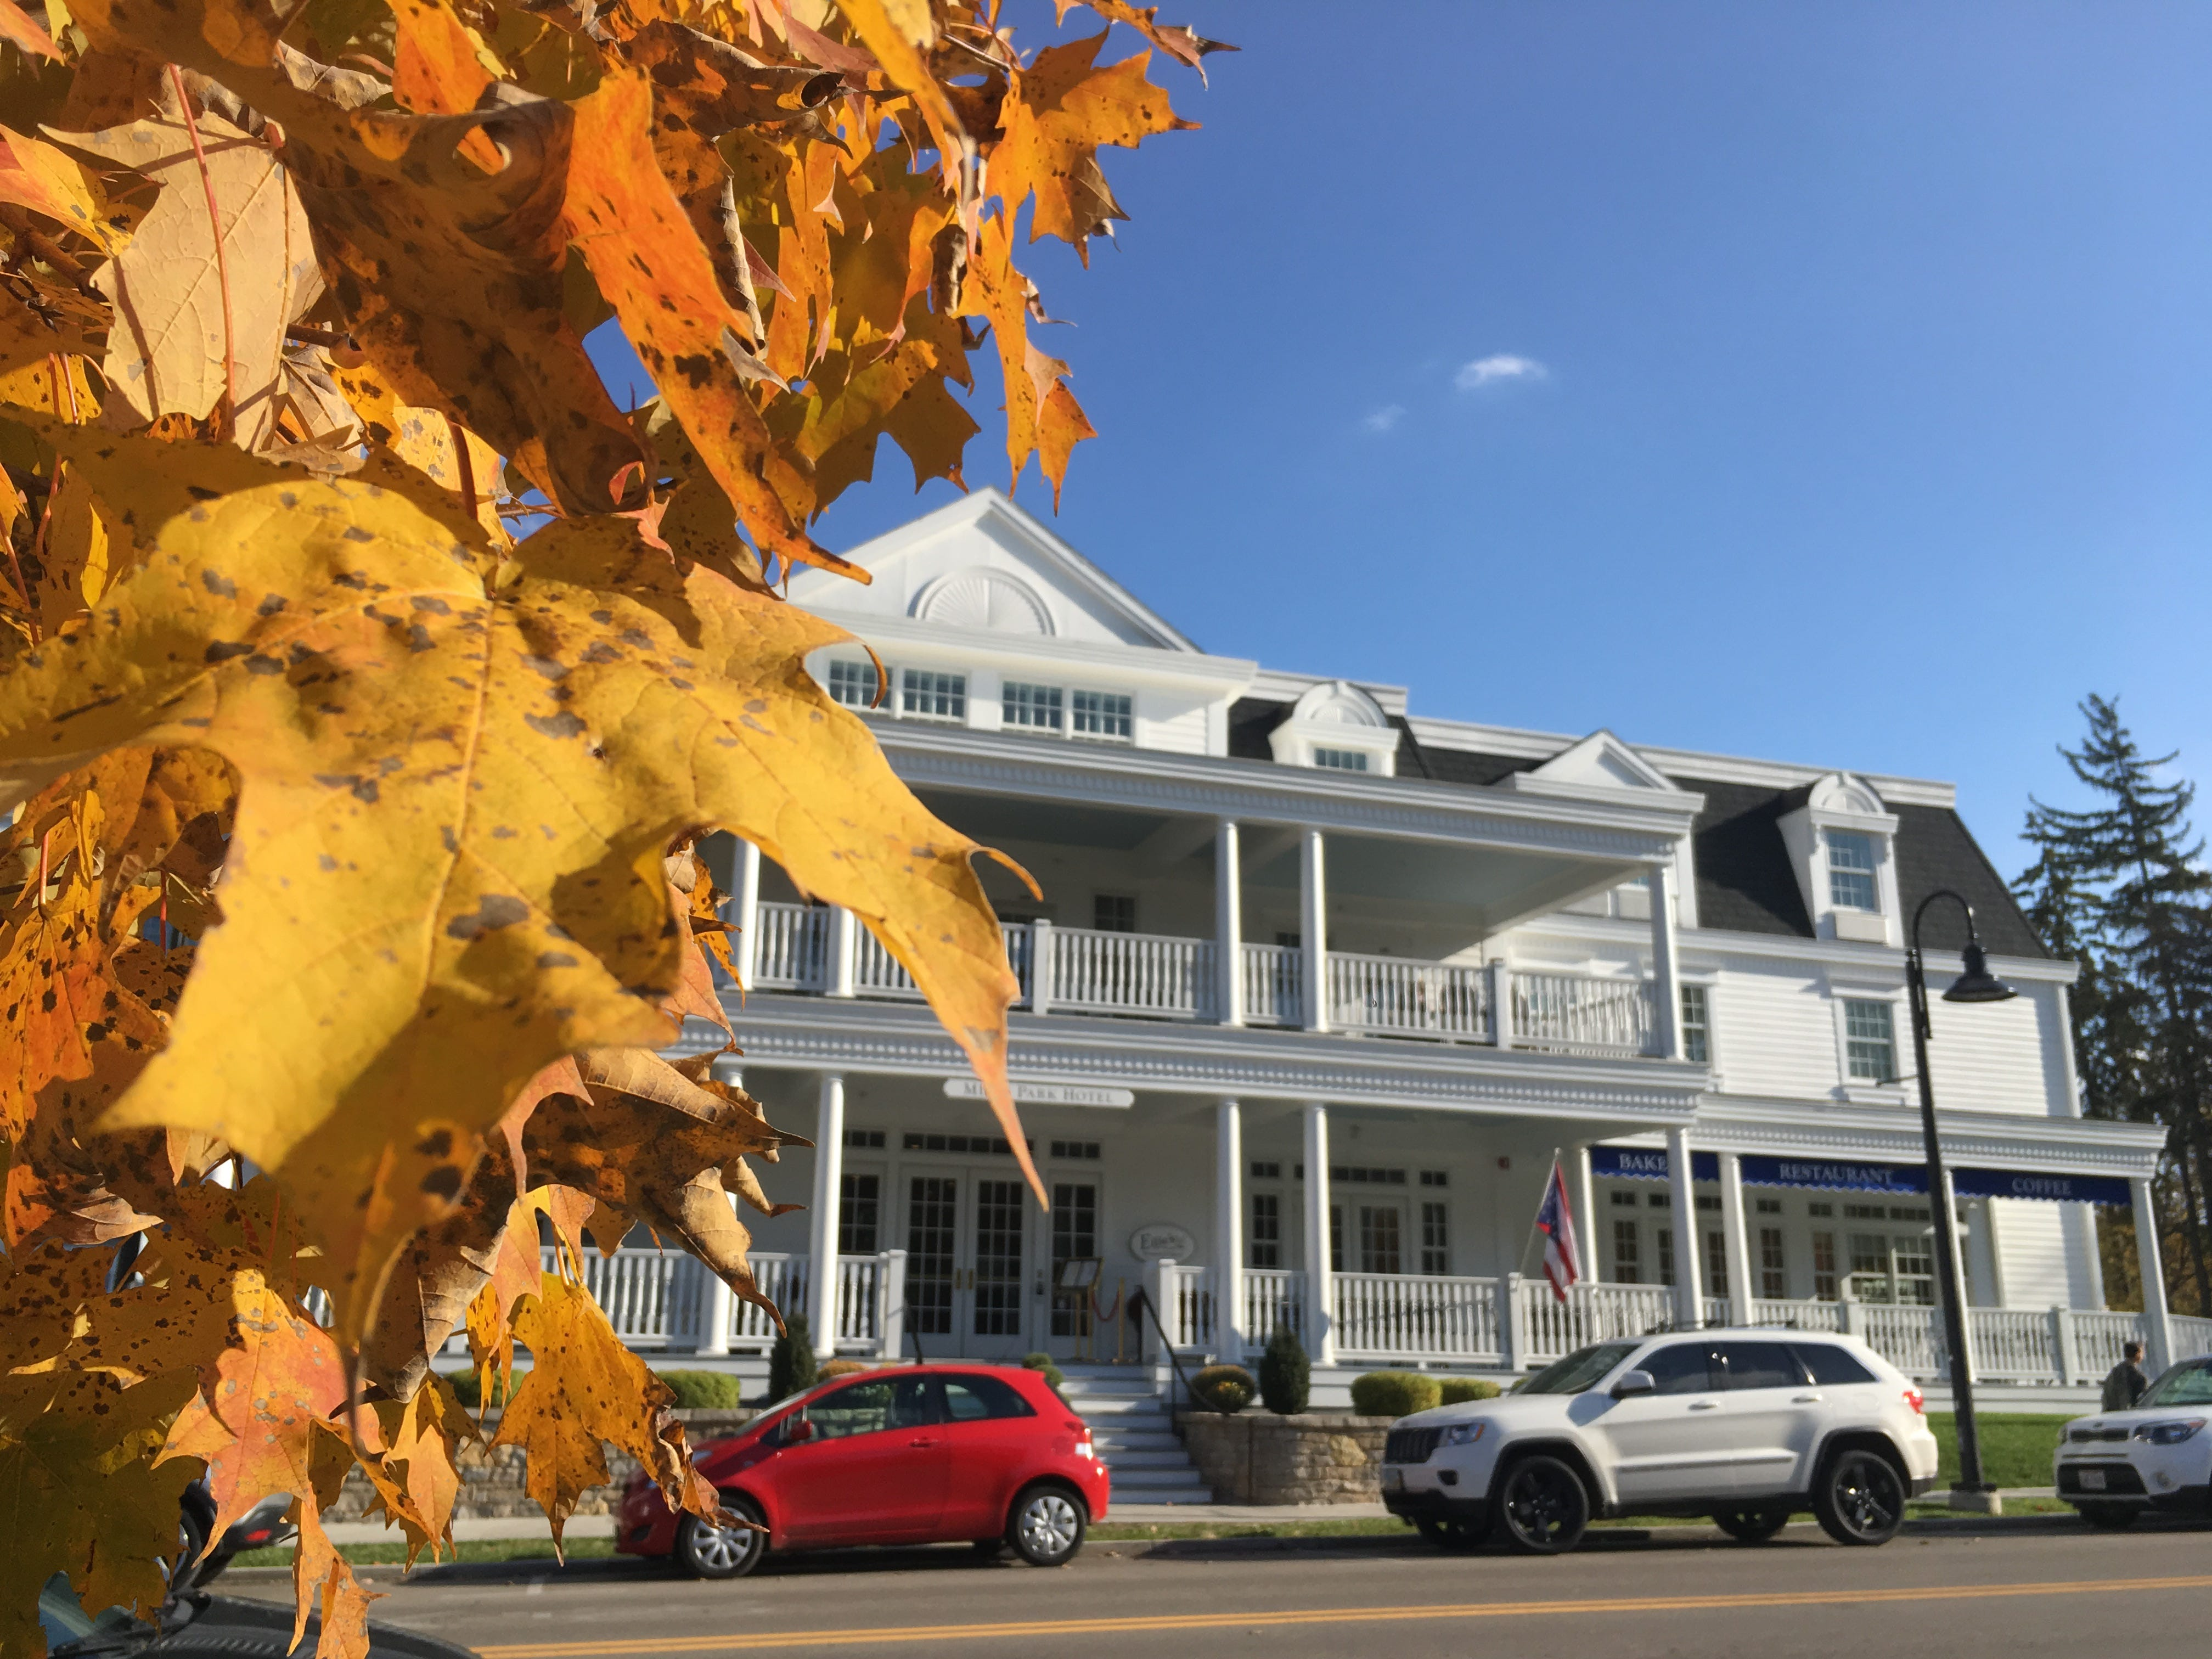 Mills Park Hotel is a newer addition to Yellow Springs and includes a dining option: Ellie's Restaurant.